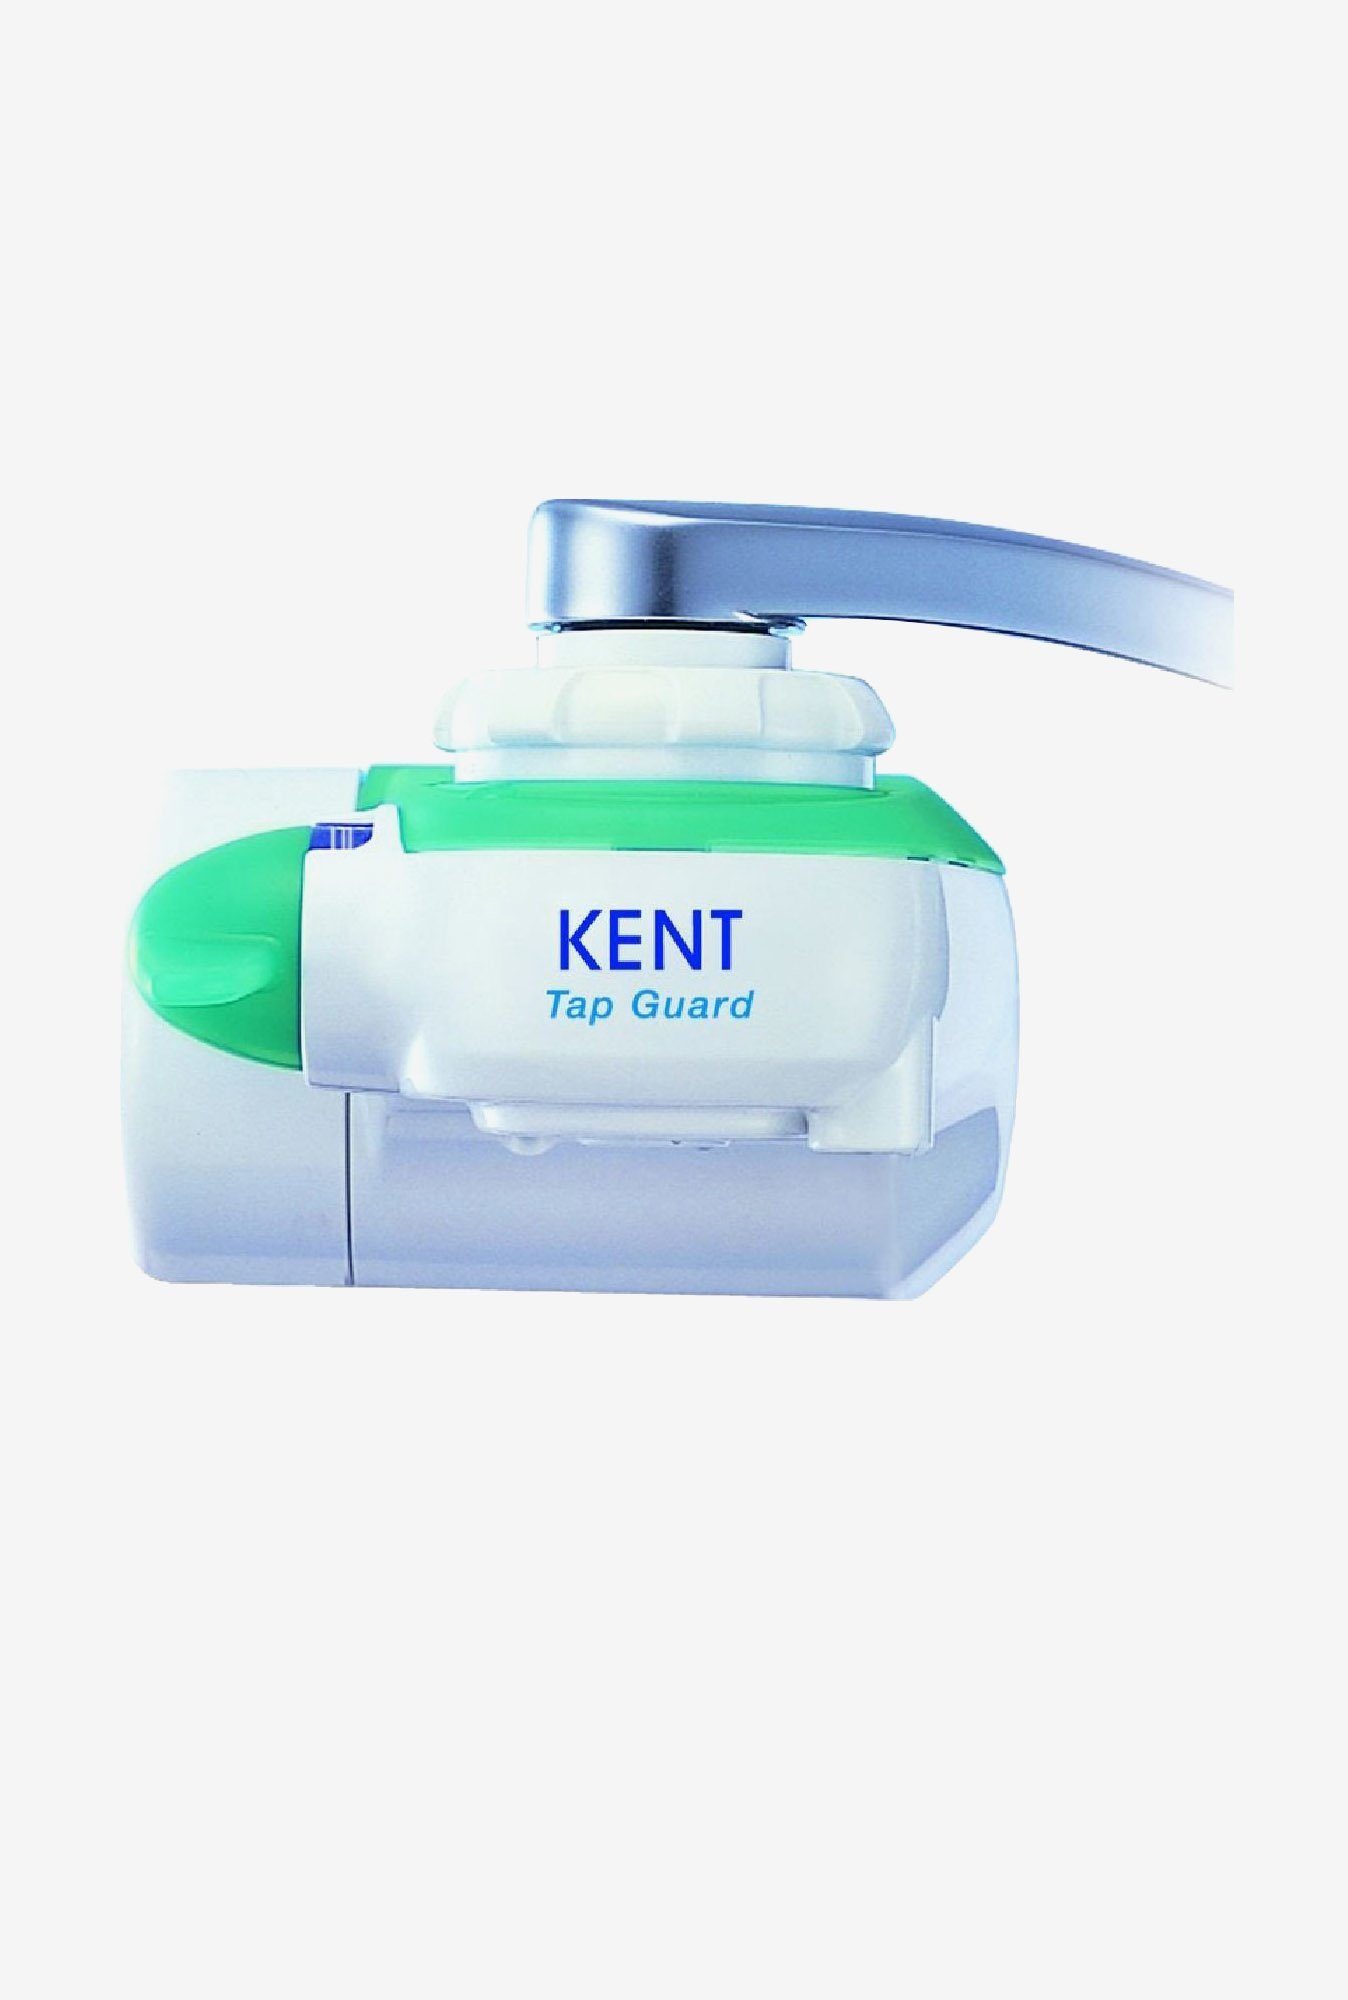 Kent Tap Guard Water Purifier (White)